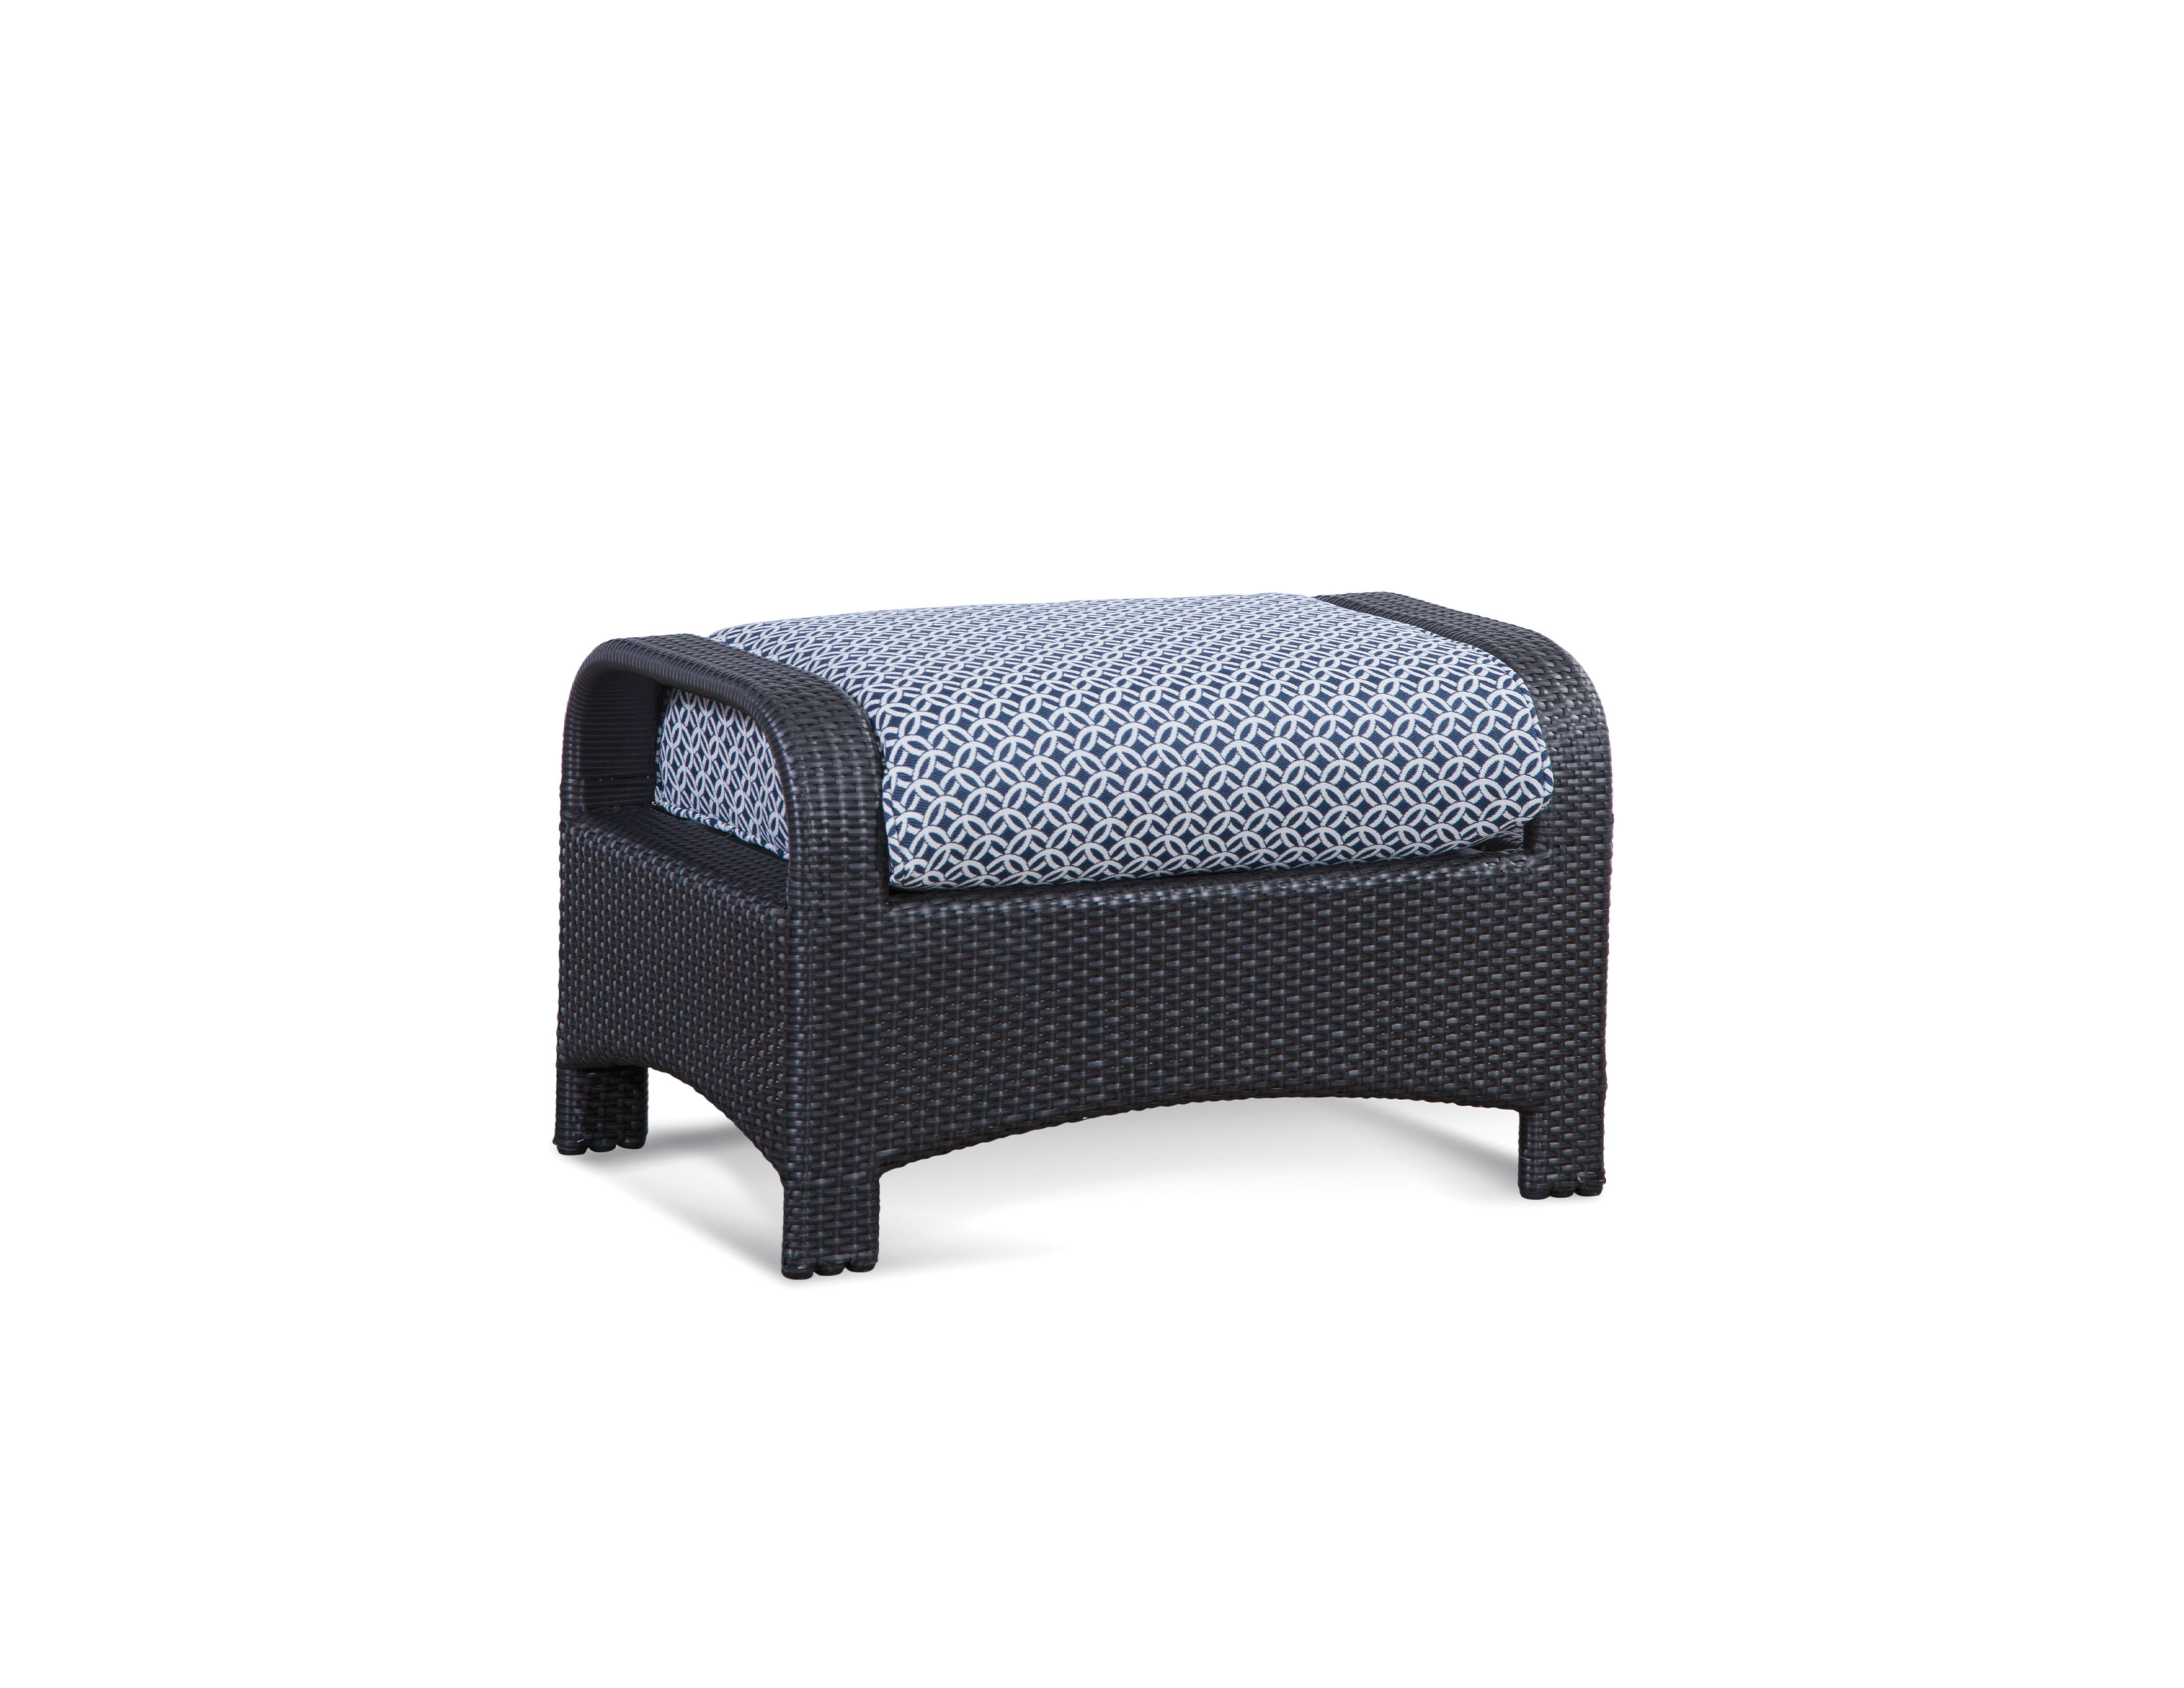 Brighton Pointe 435 Outdoor Sofa Made To Order Sofas And Sectionals